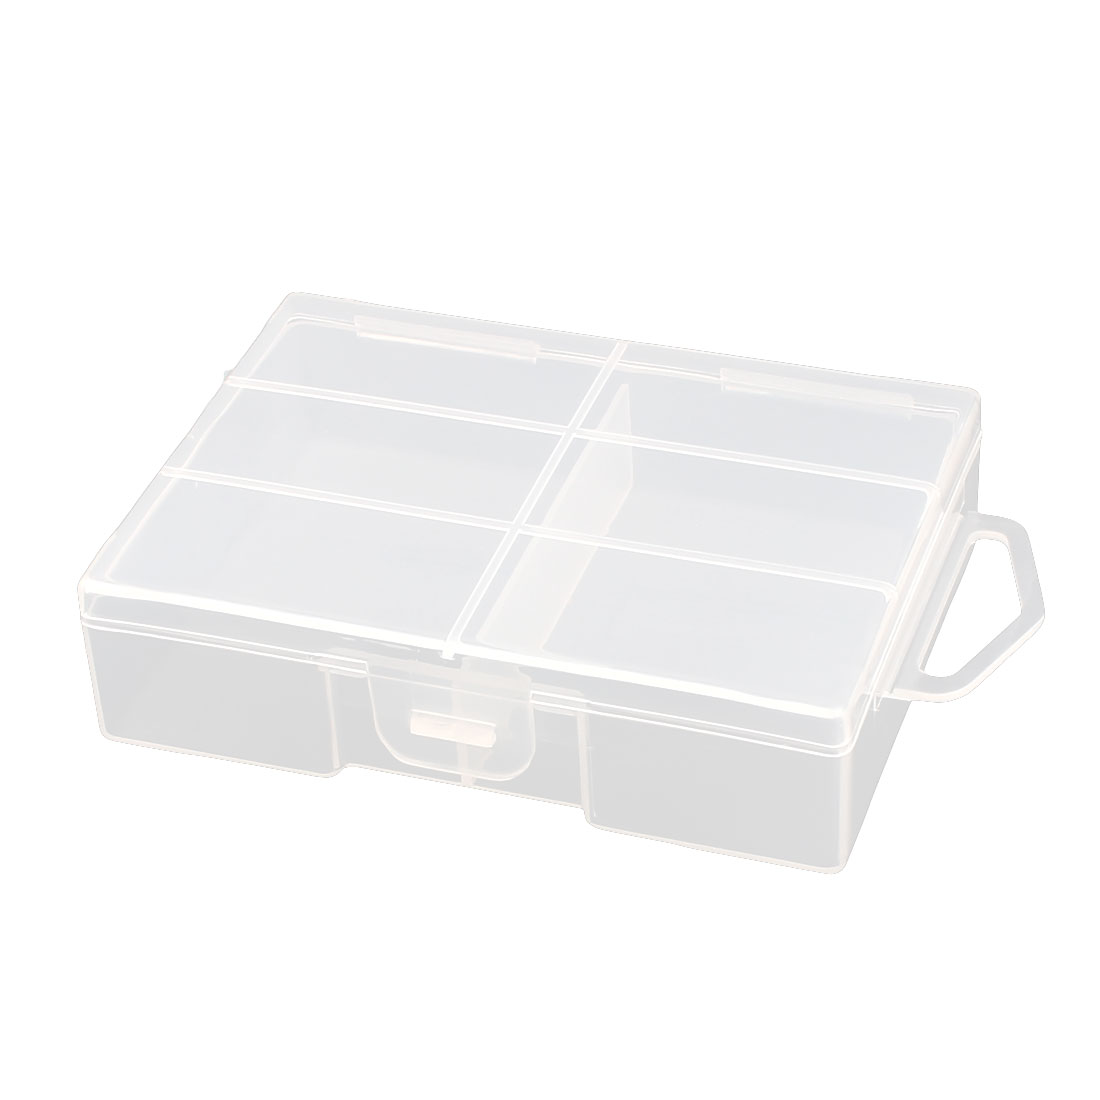 Hard Plastic Case Holder Storage Box Container for 24 x AAA Battey